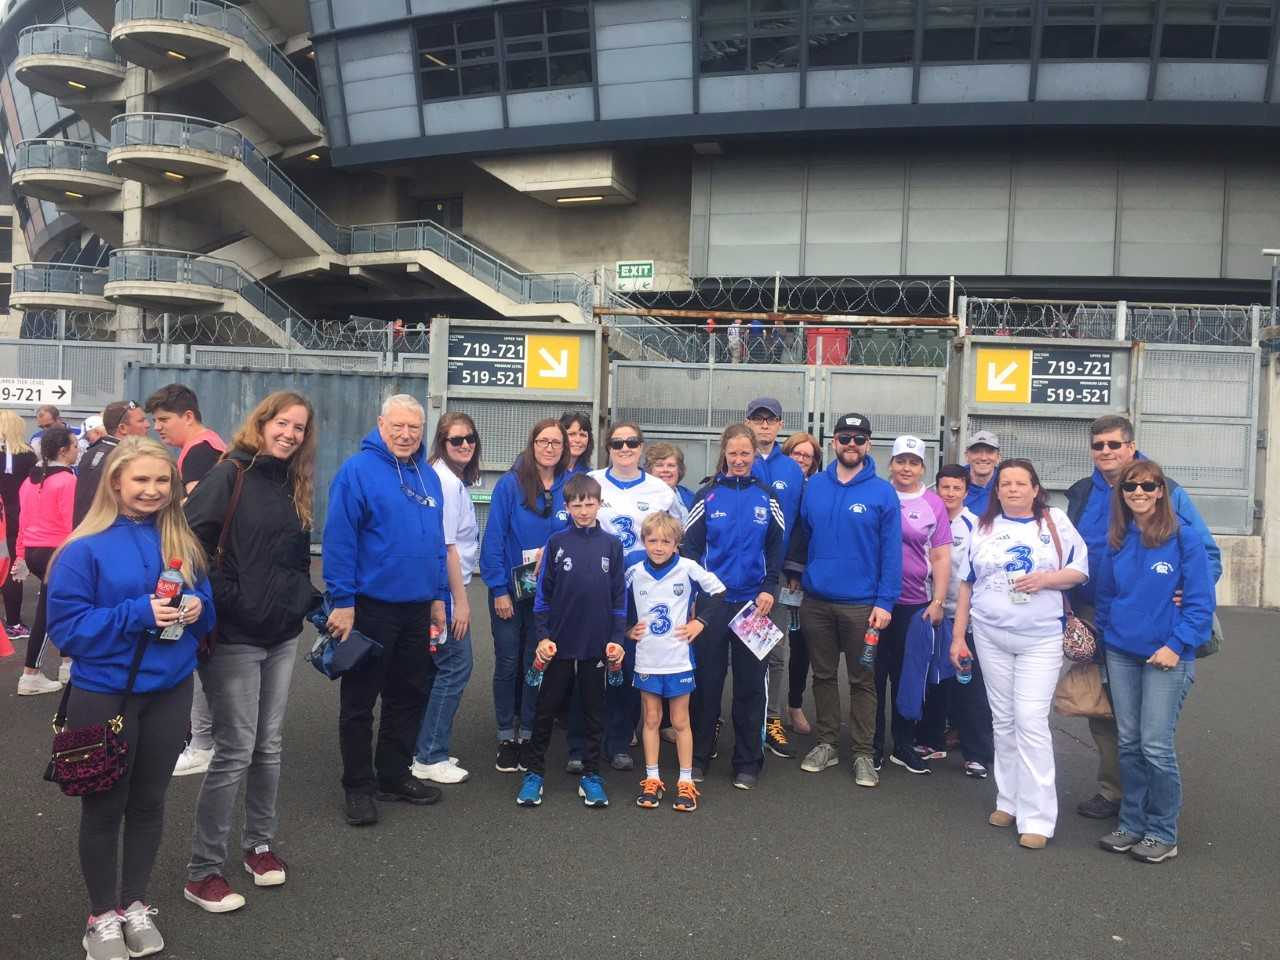 Waterford fans set to watch All Ireland Final in Boston